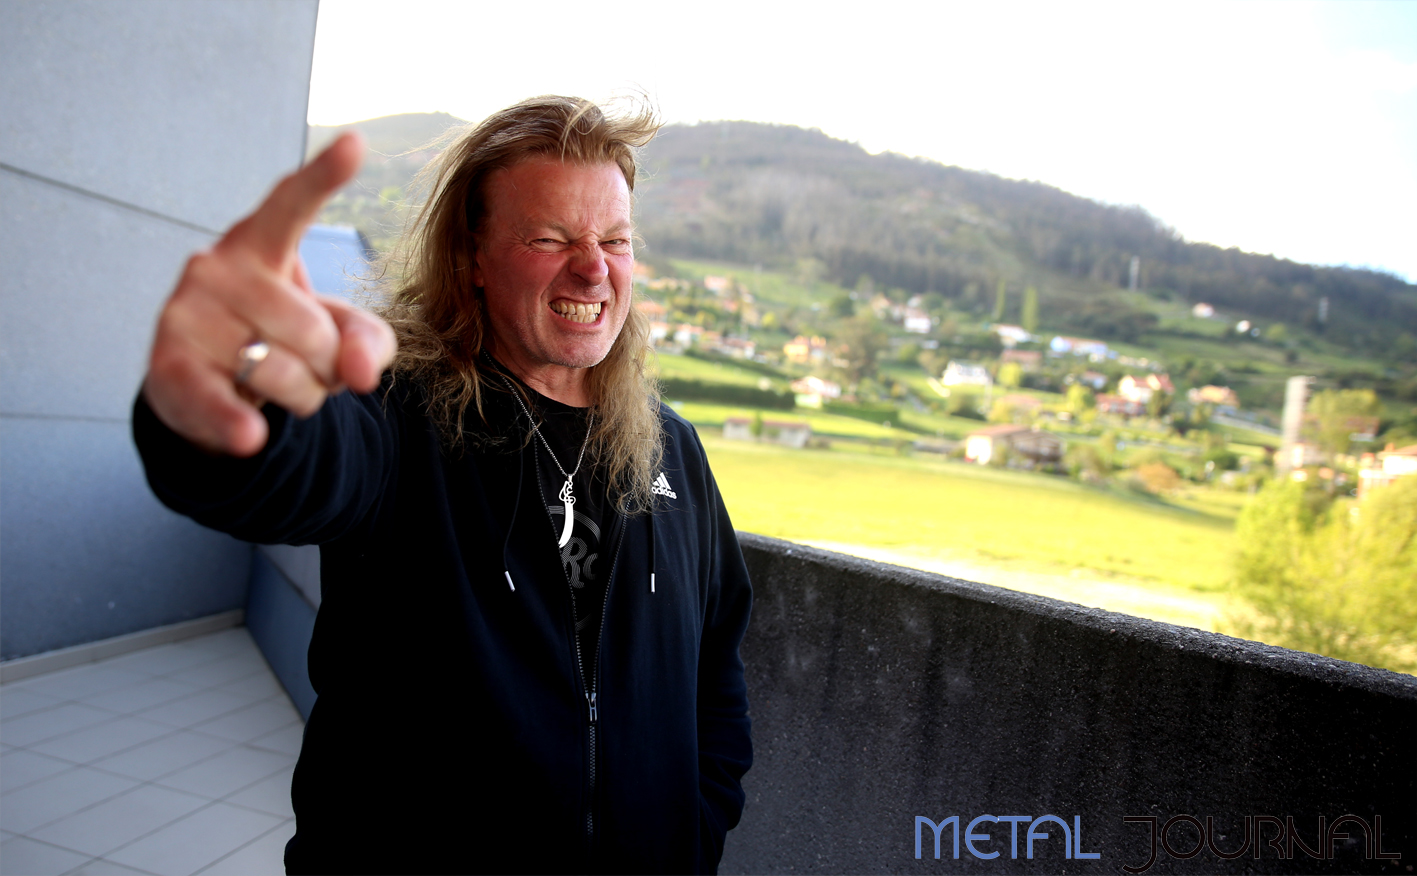 roland grapow - metal journal oviedo 2018 pic 1